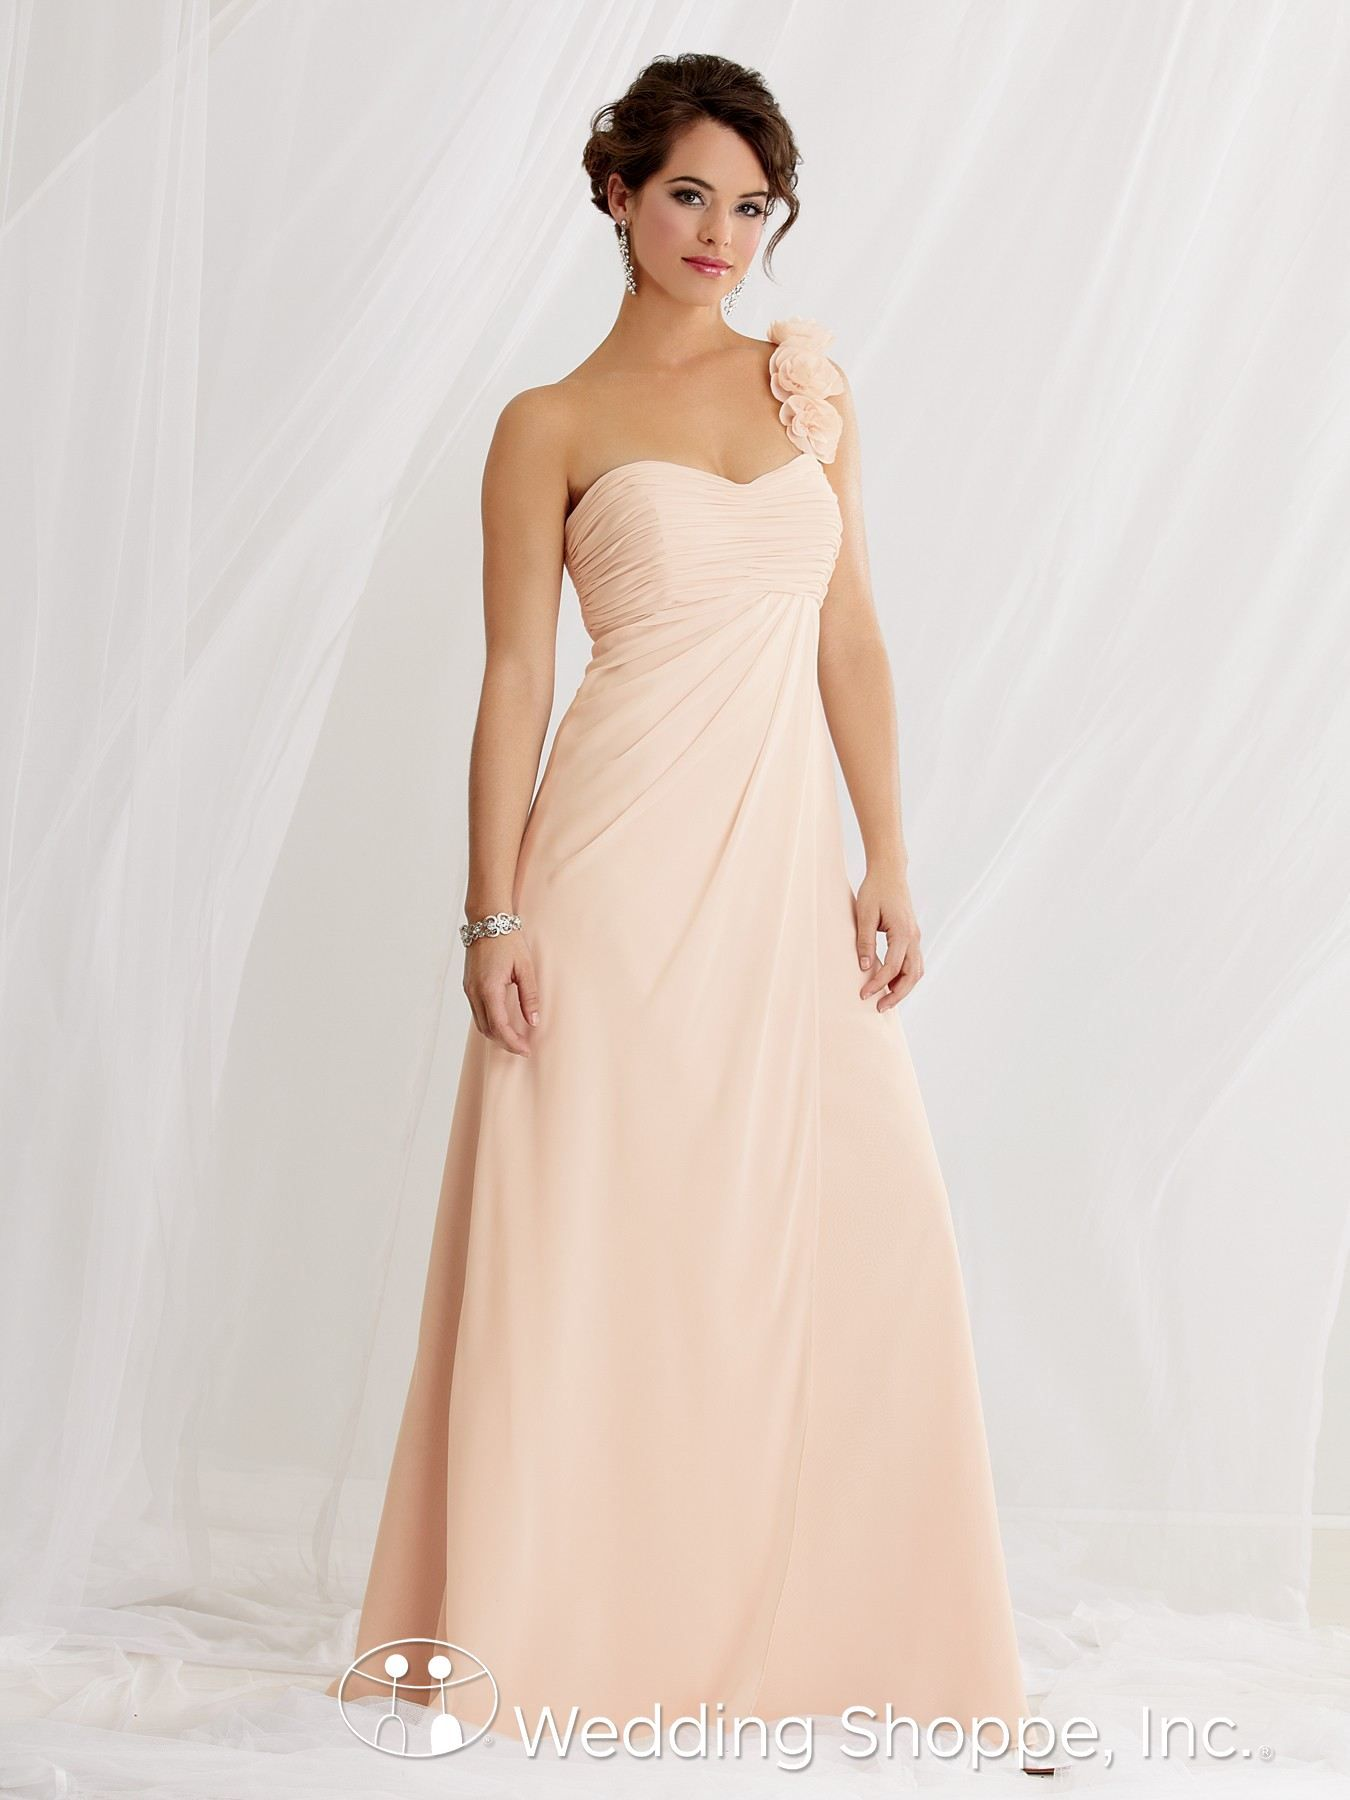 Jordan bridesmaid dress 463 blushing bride pinterest free jordan bridesmaid dress 463 ombrellifo Image collections